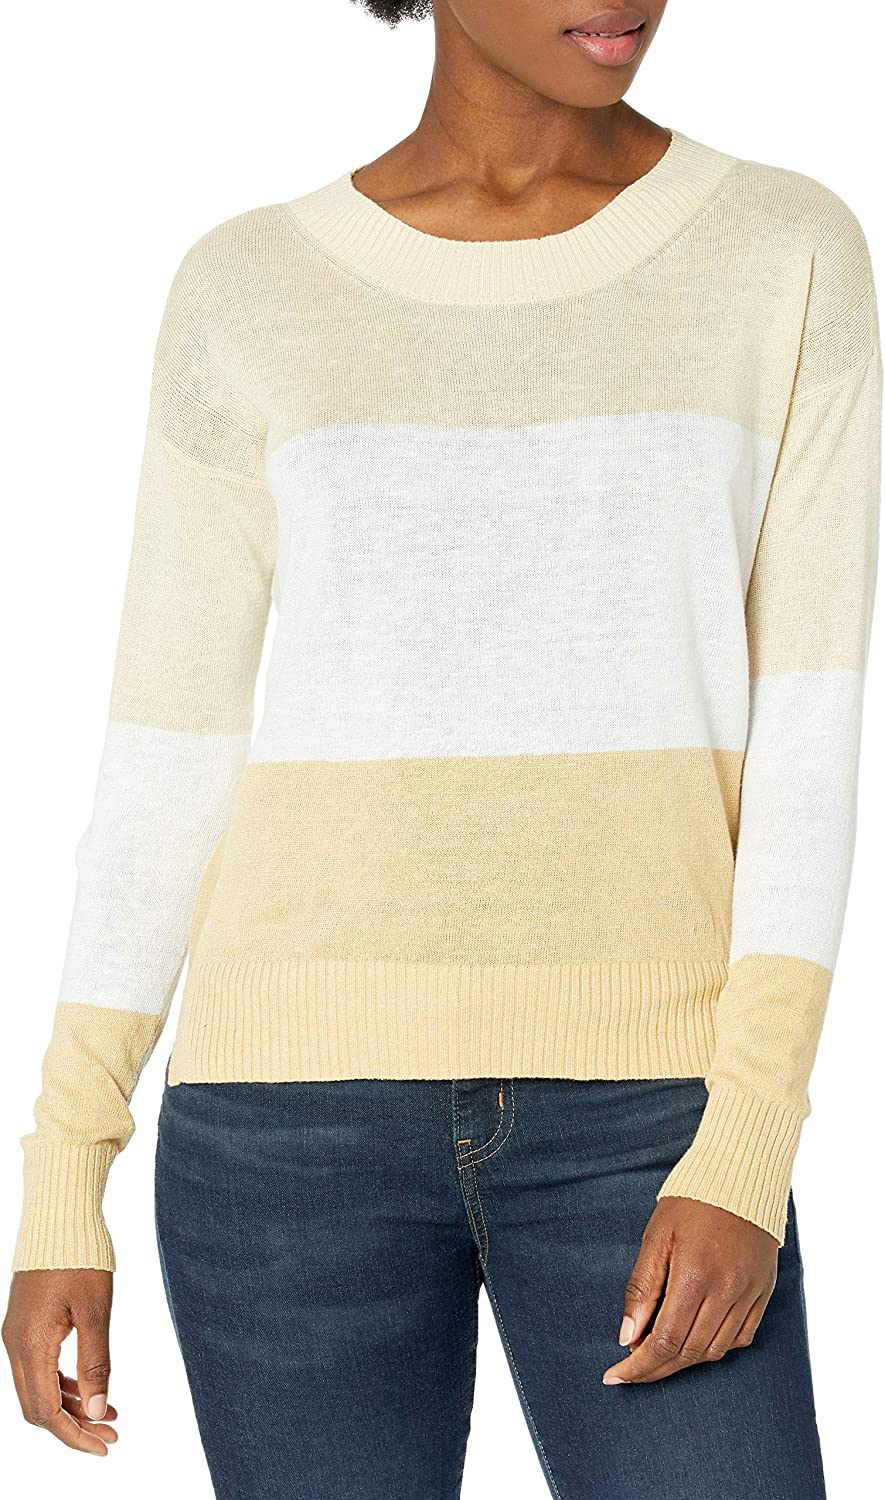 Club Max 58% OFF Monaco National products Women's Boatneck Linen